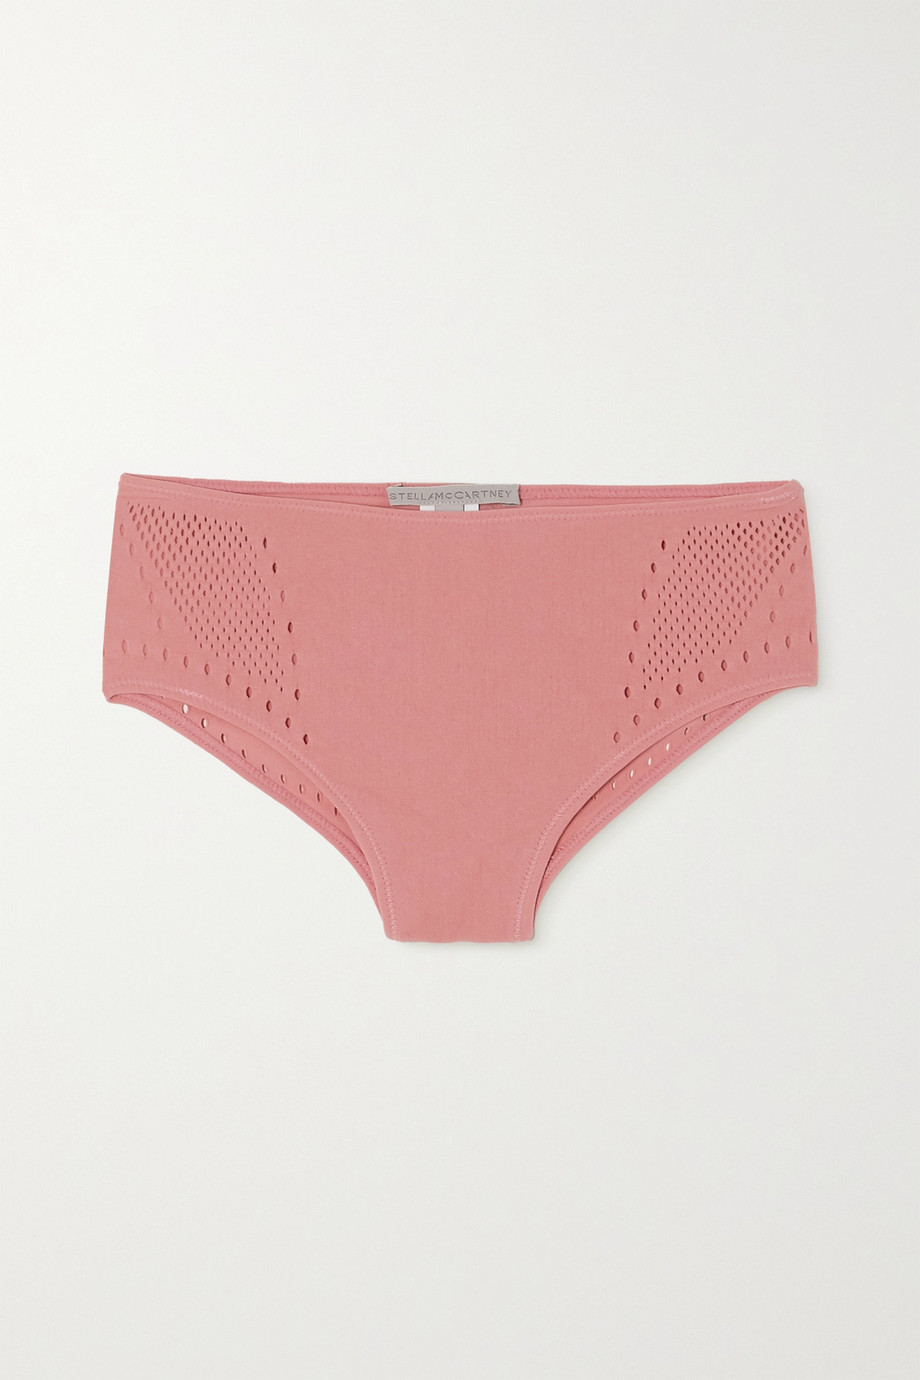 Stella McCartney Perforated jersey briefs